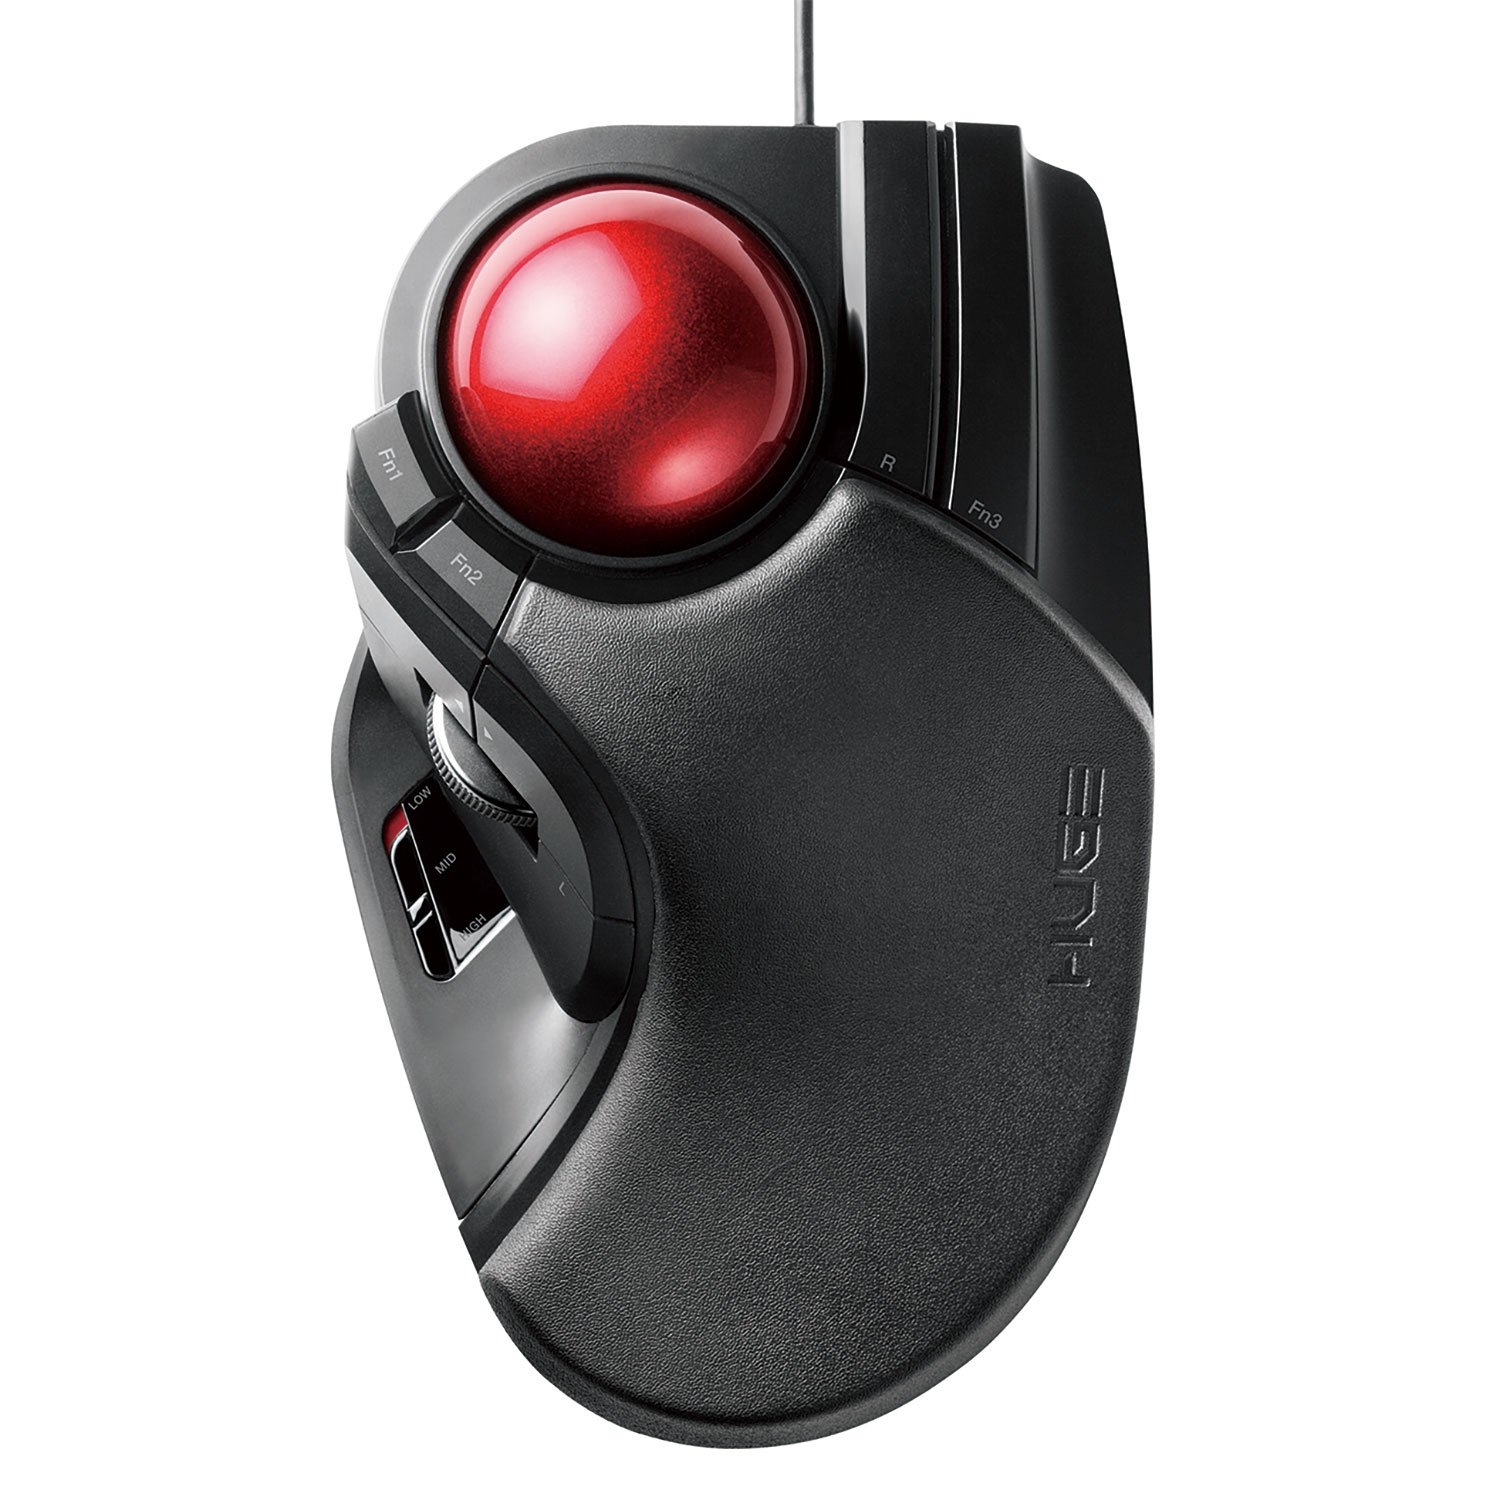 ELECOM Trackball Mouse Wired Large Ball 8 Button with Tilt Function LL Size [Black] M-HT1URXBK (Japan Import)